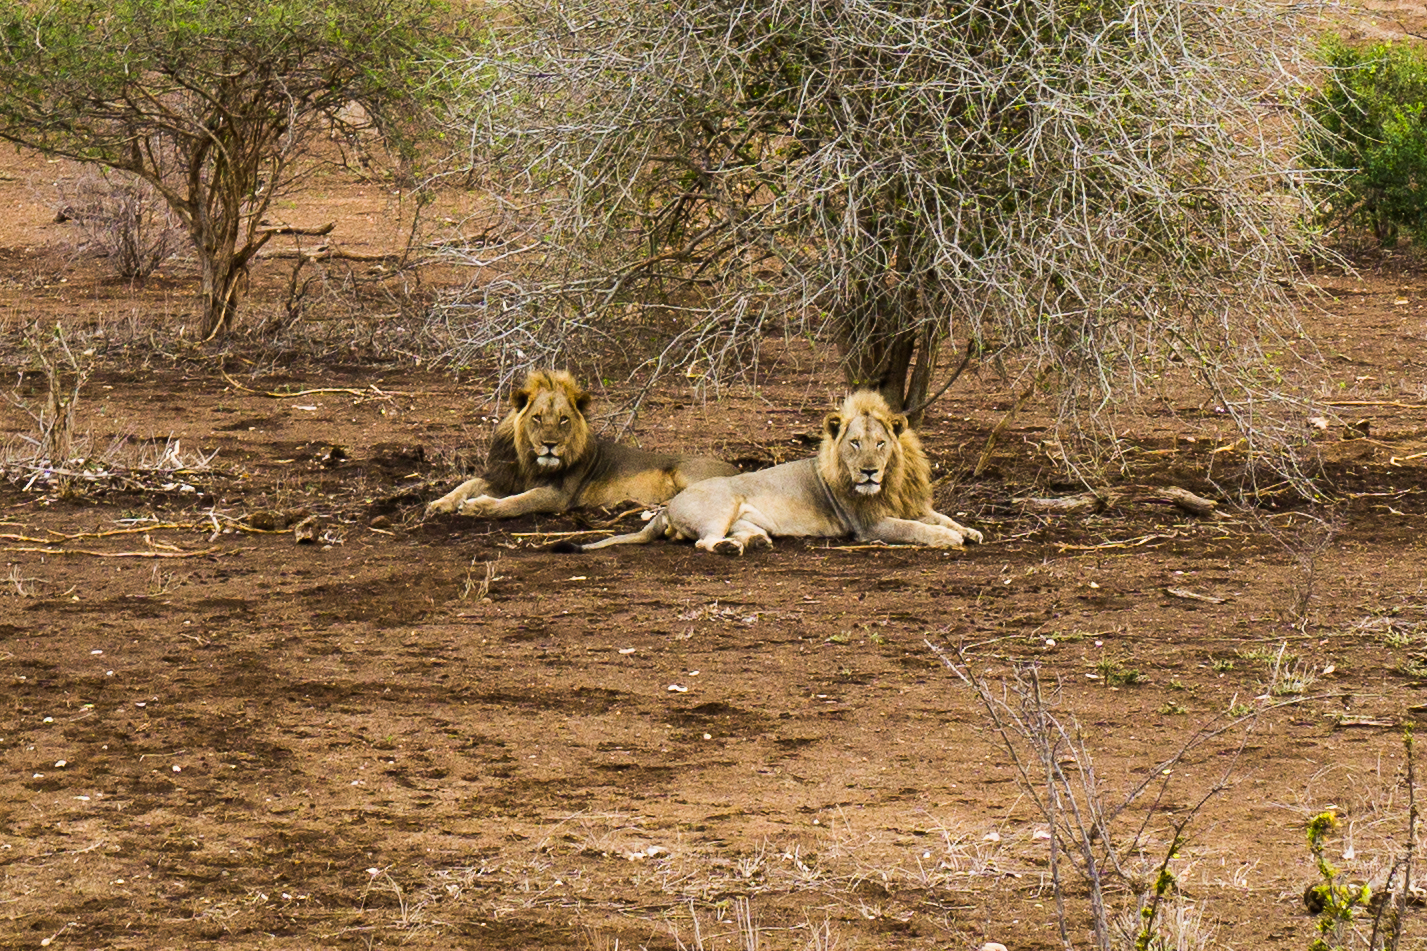 Lion Pals @ Kruger National Park.